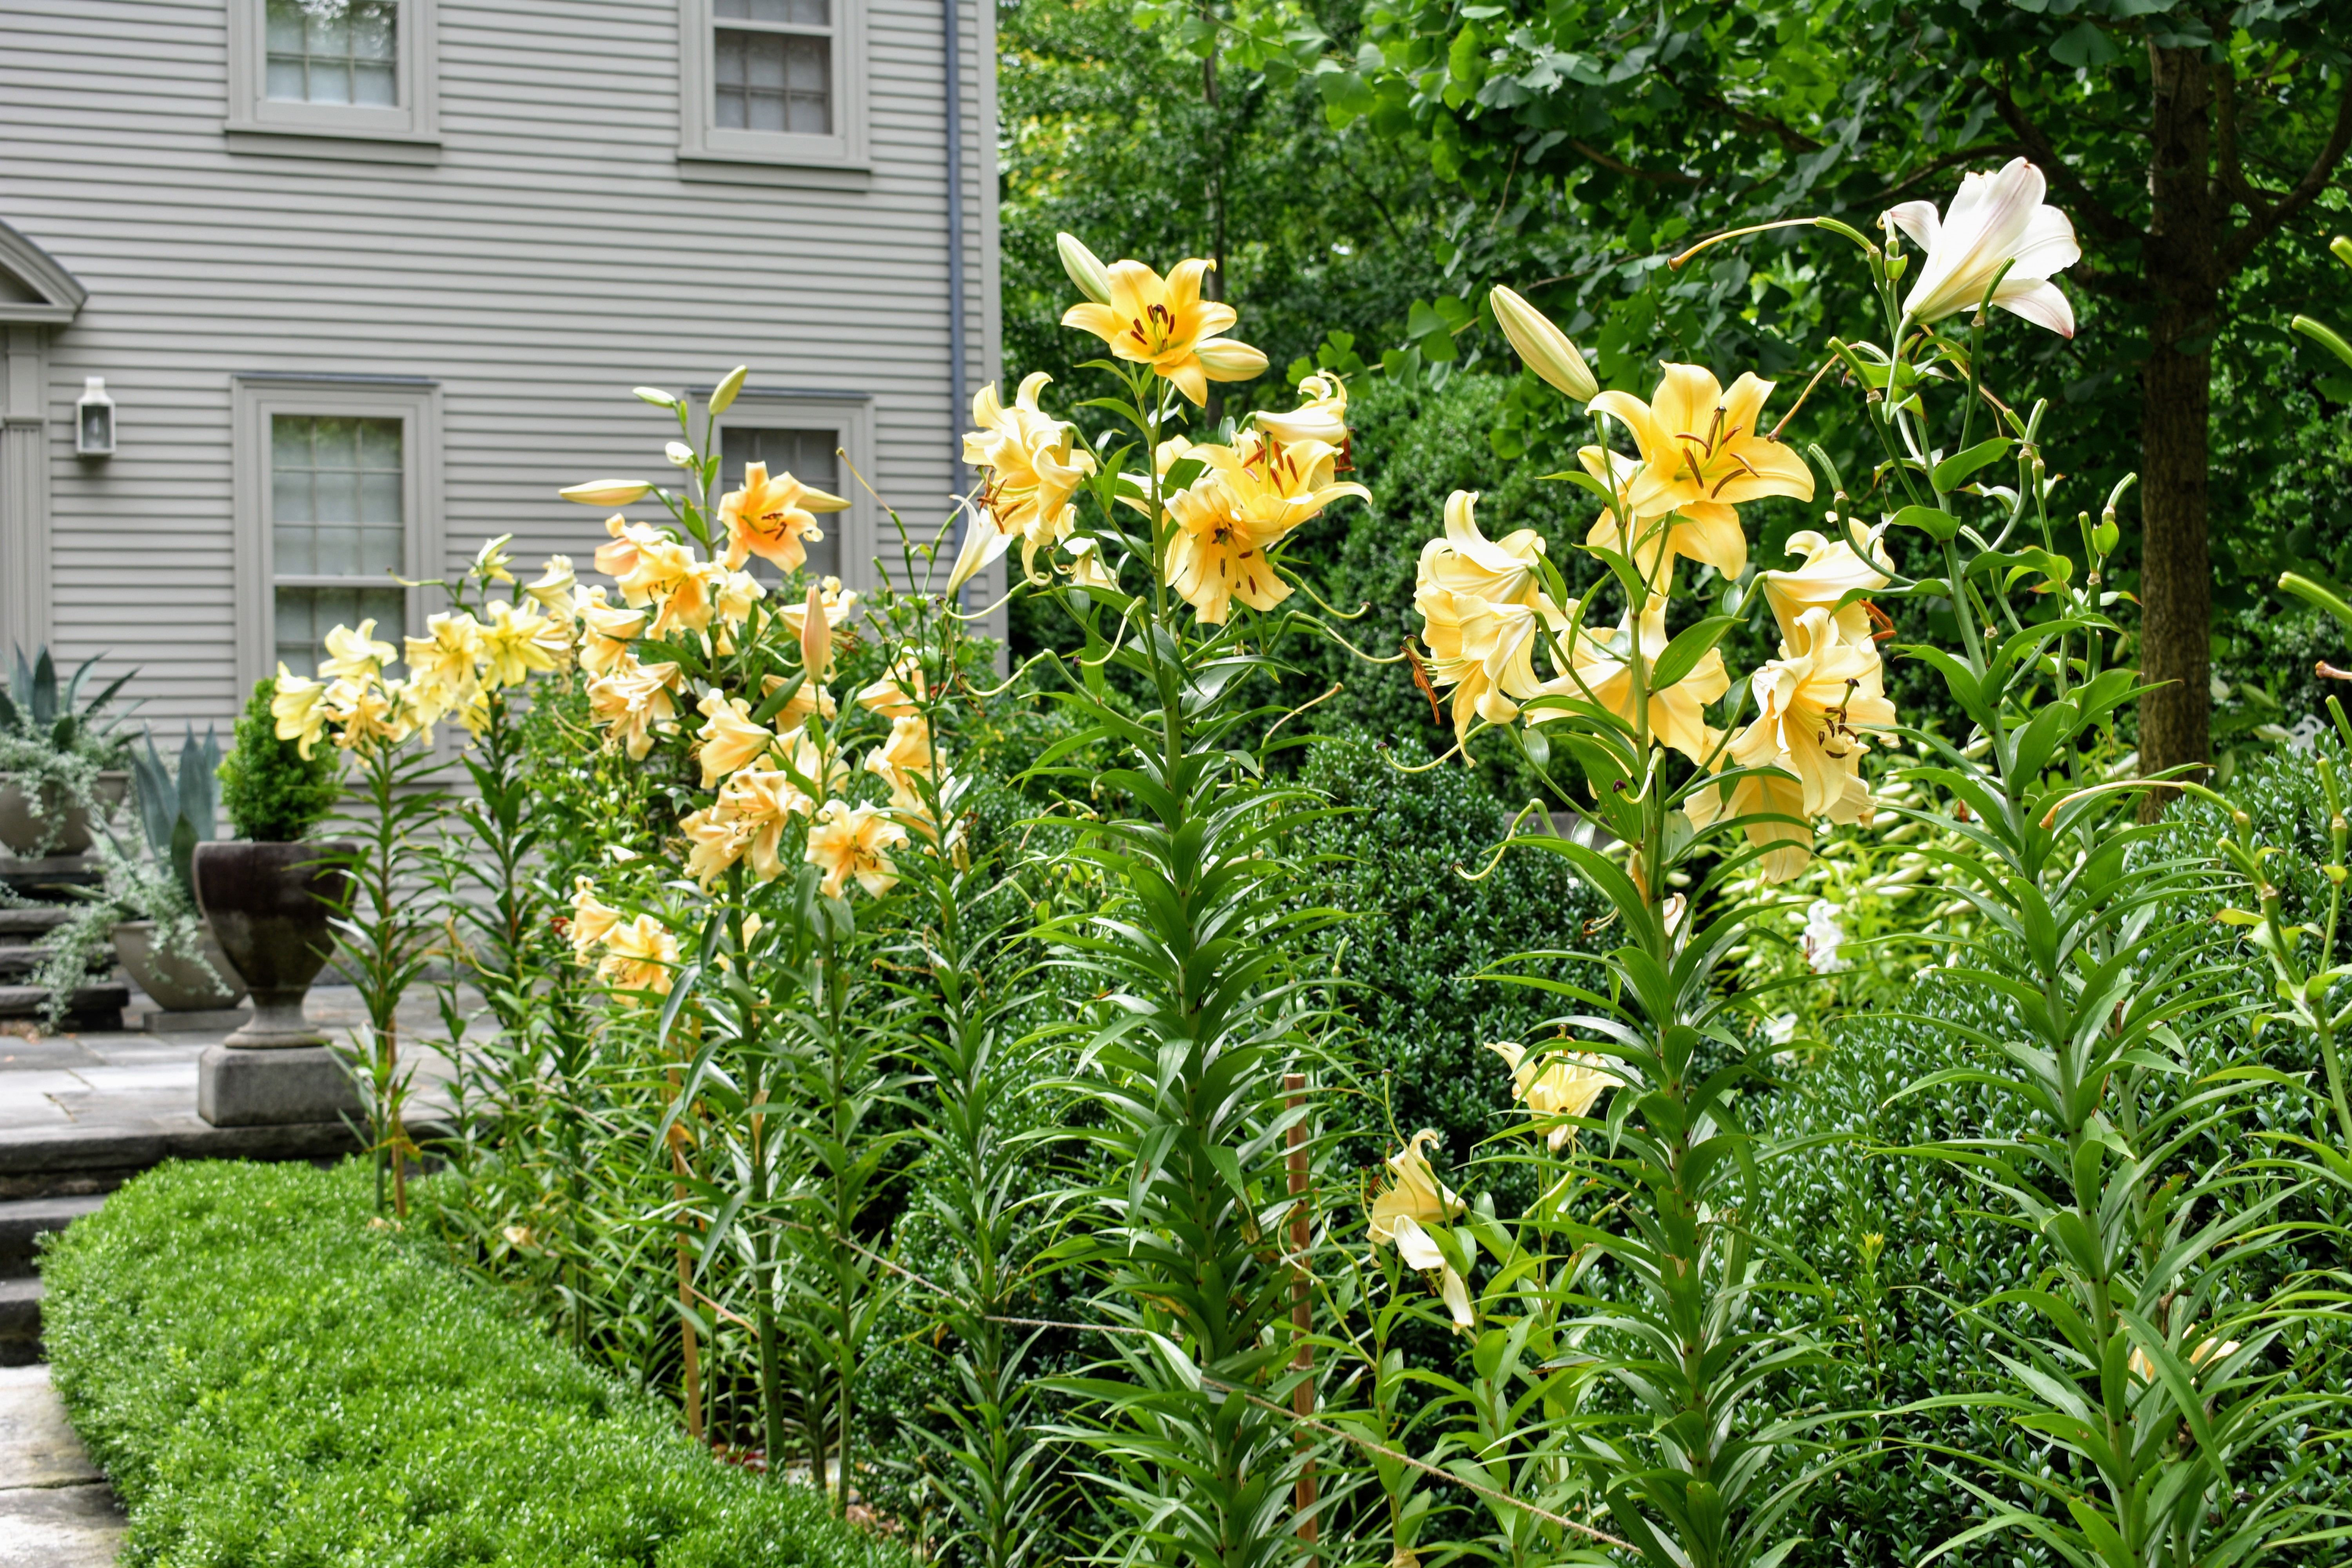 The Martha Stewart Blog Blog Archive Staking The Lilies In My